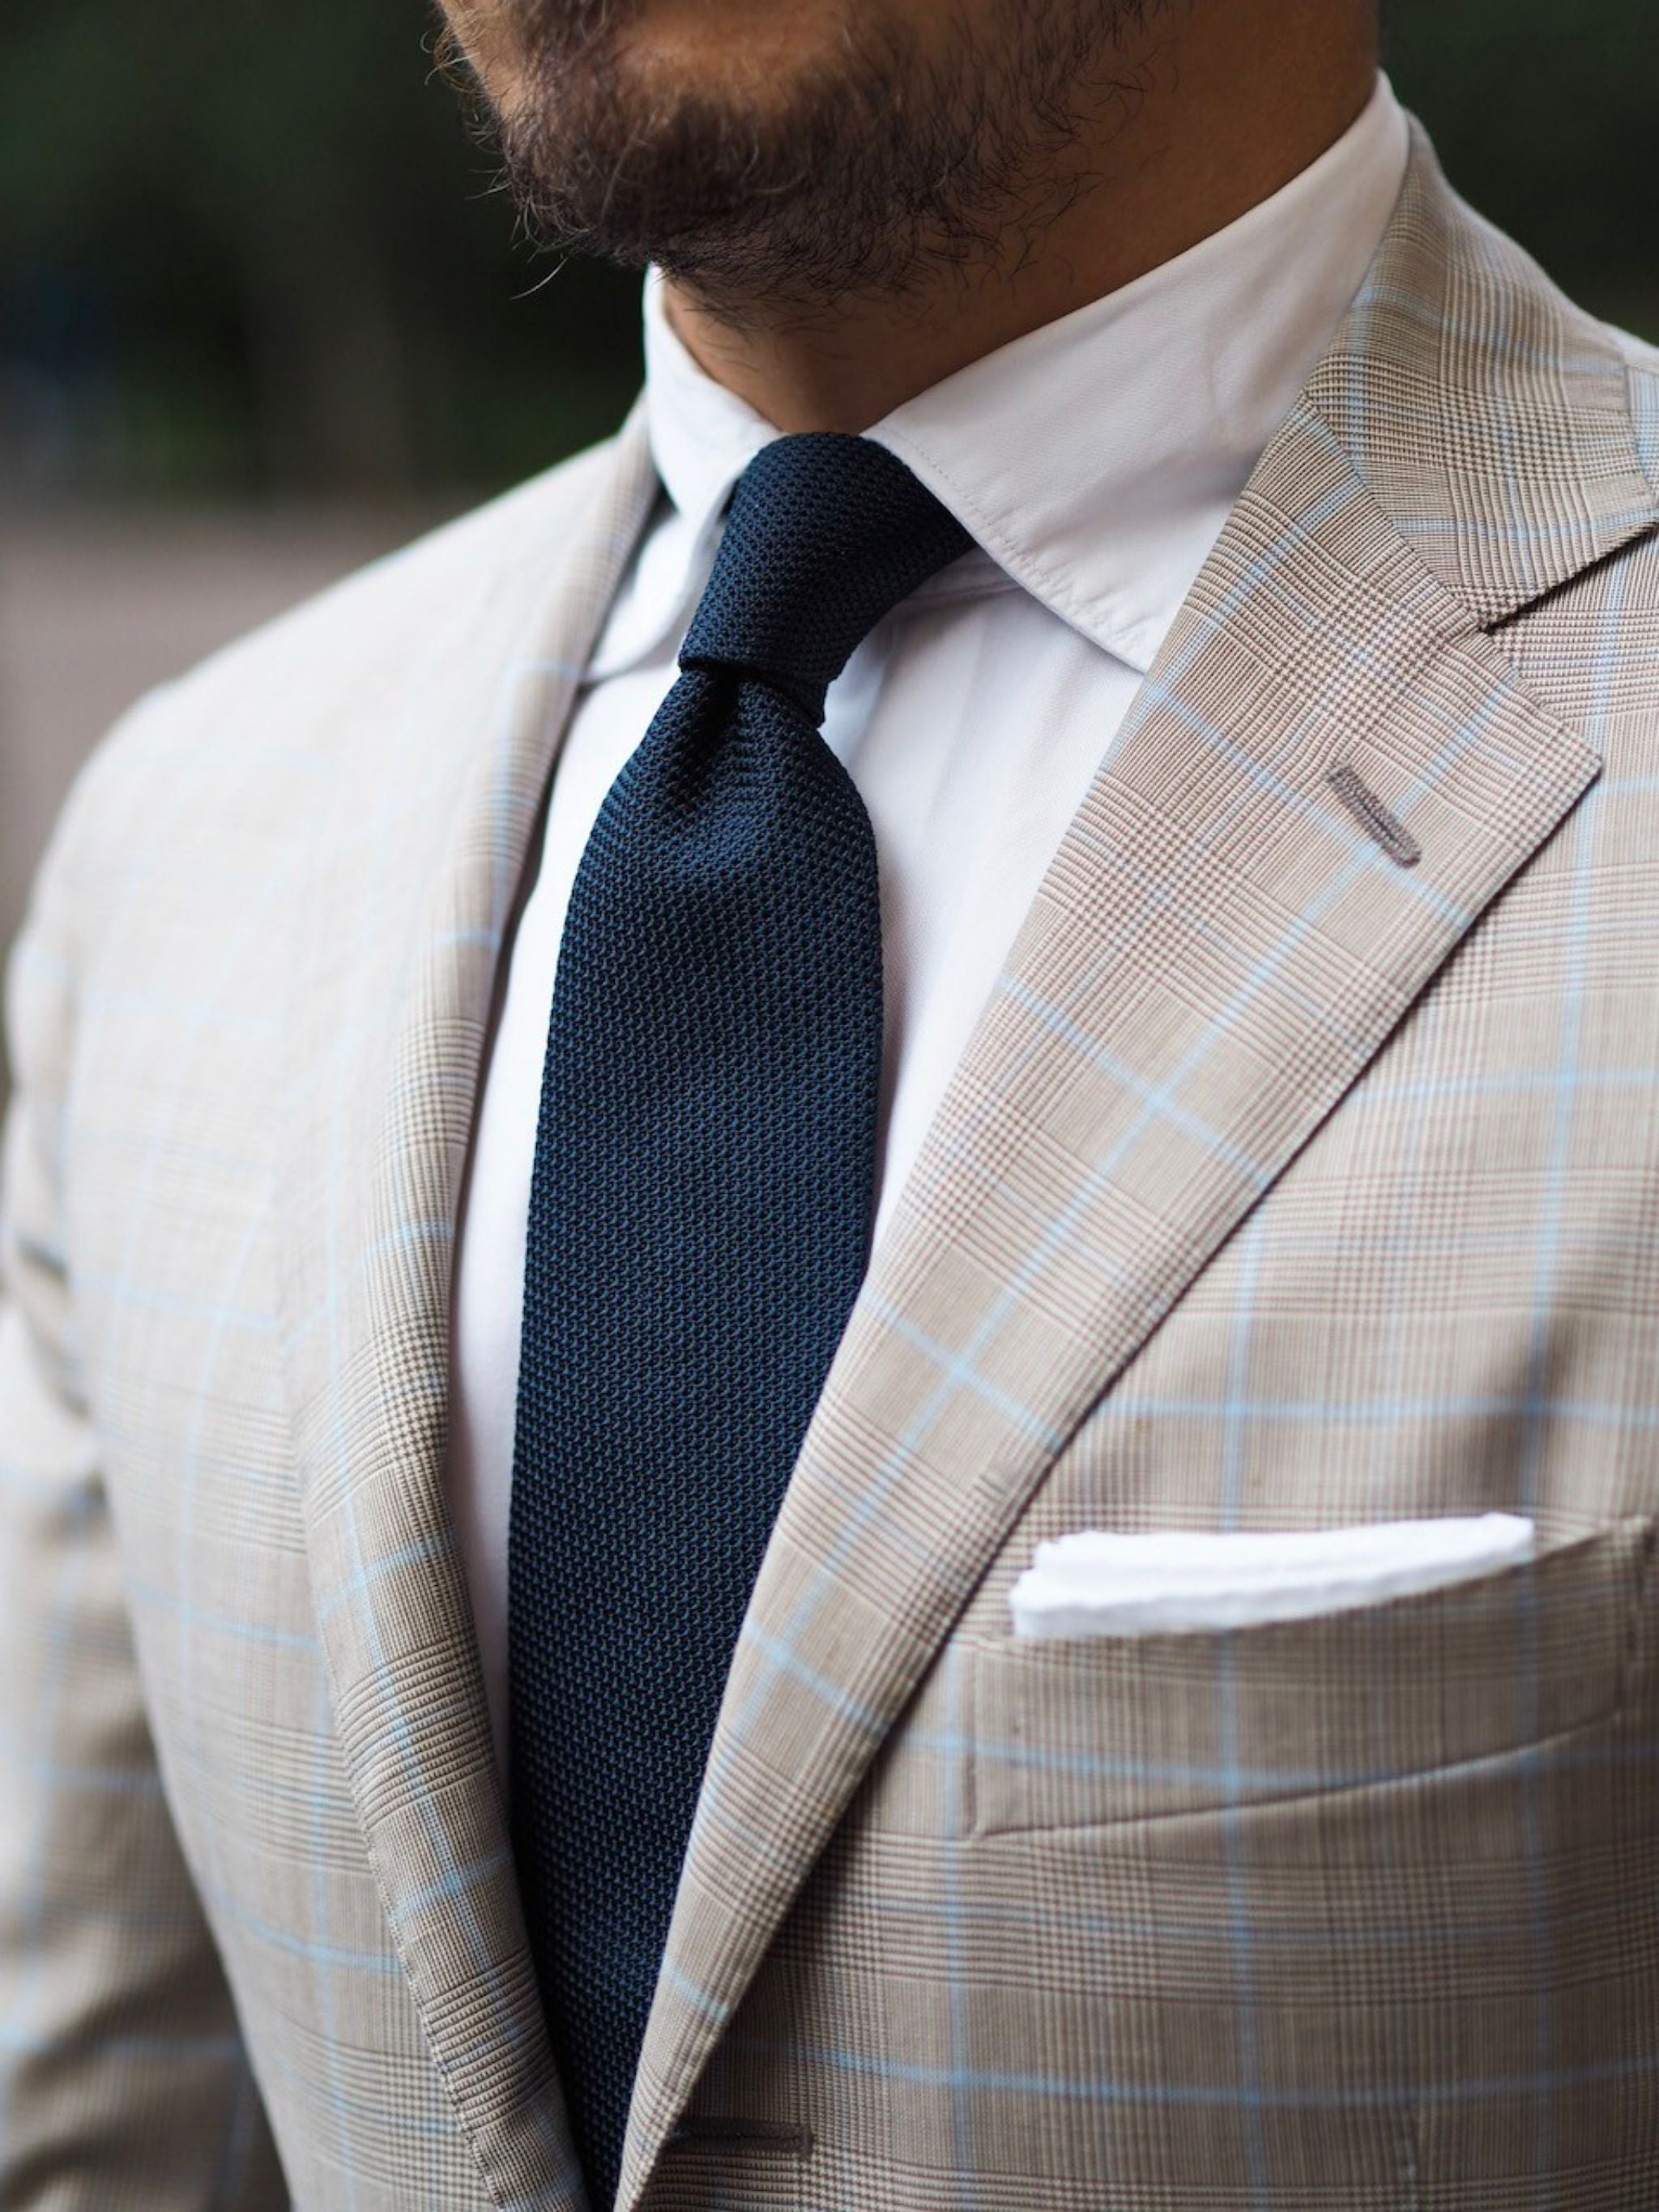 DLA navy blue grenadine tie texture with checked sport coat white shirt and white linen pocket square